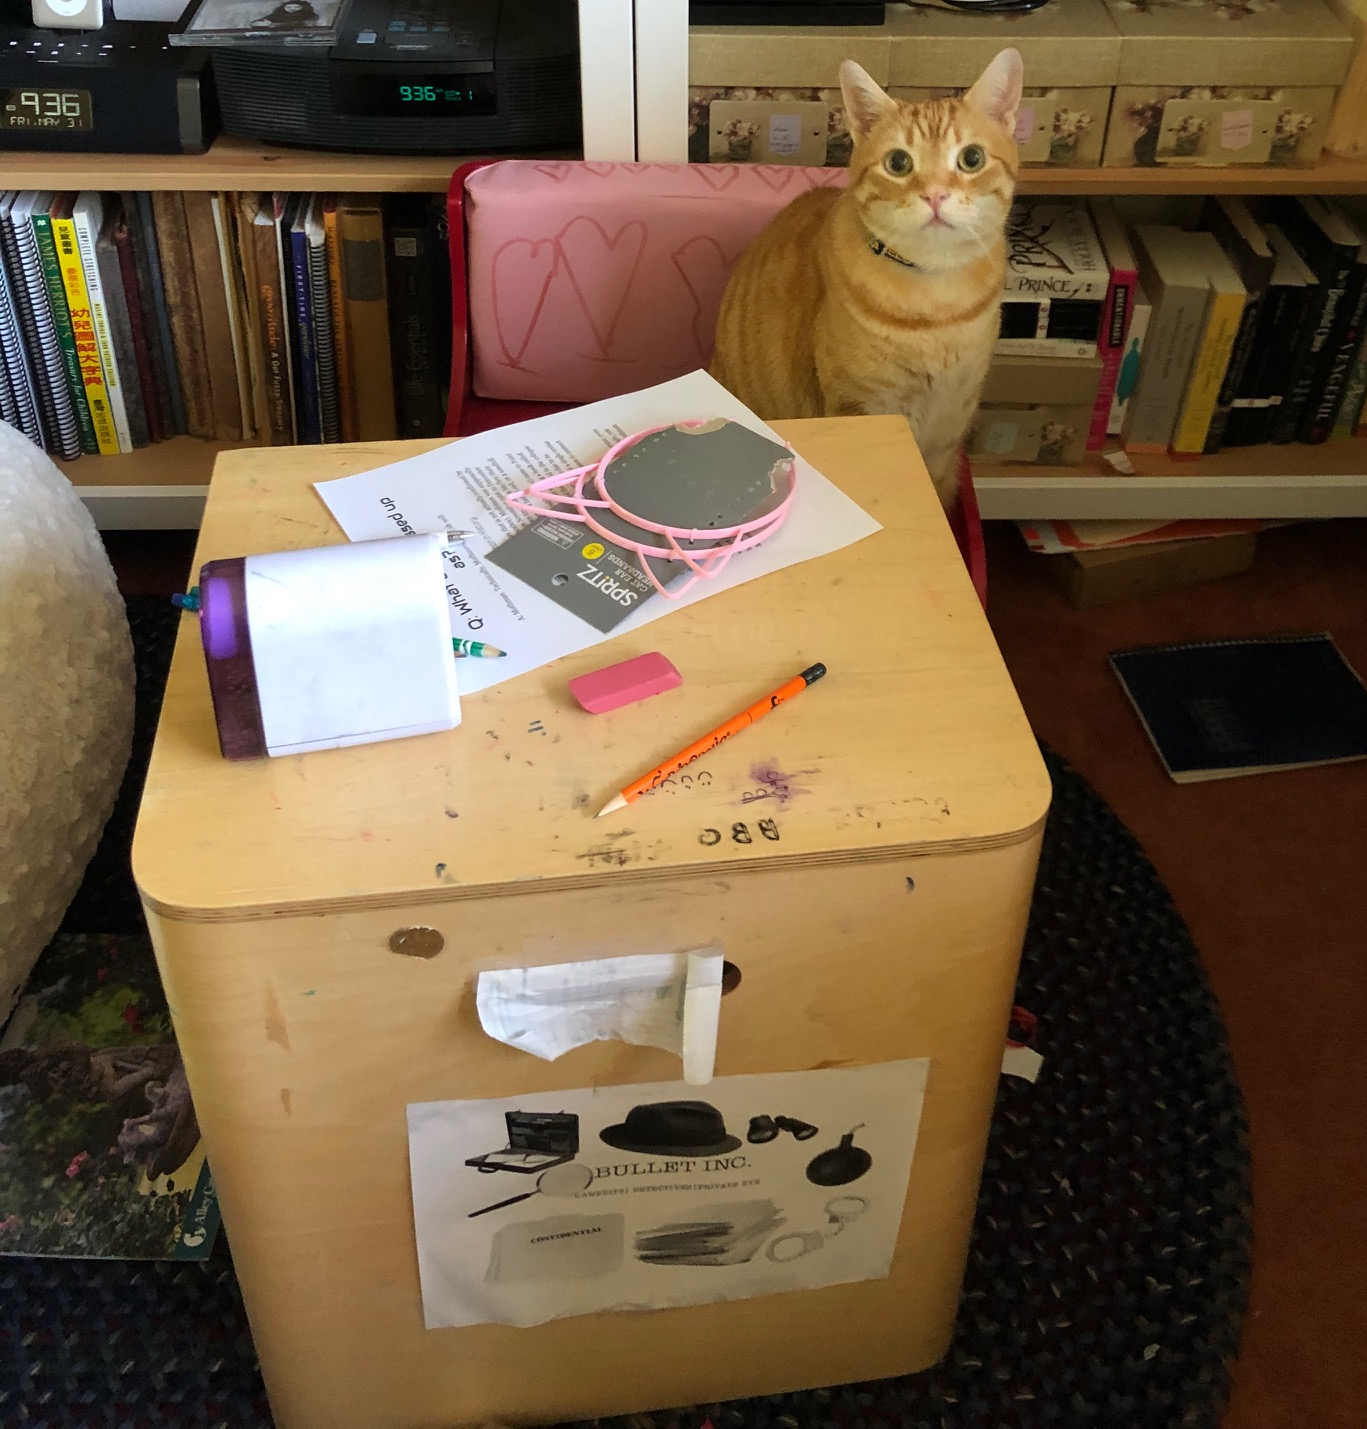 "My orange tabby, Canelo, sits at my daughter's desk. On the table top is my daughter's essay on the Mothman. The desk itself has a sign on the front that reads ""Bullet Inc. Lawsuits 